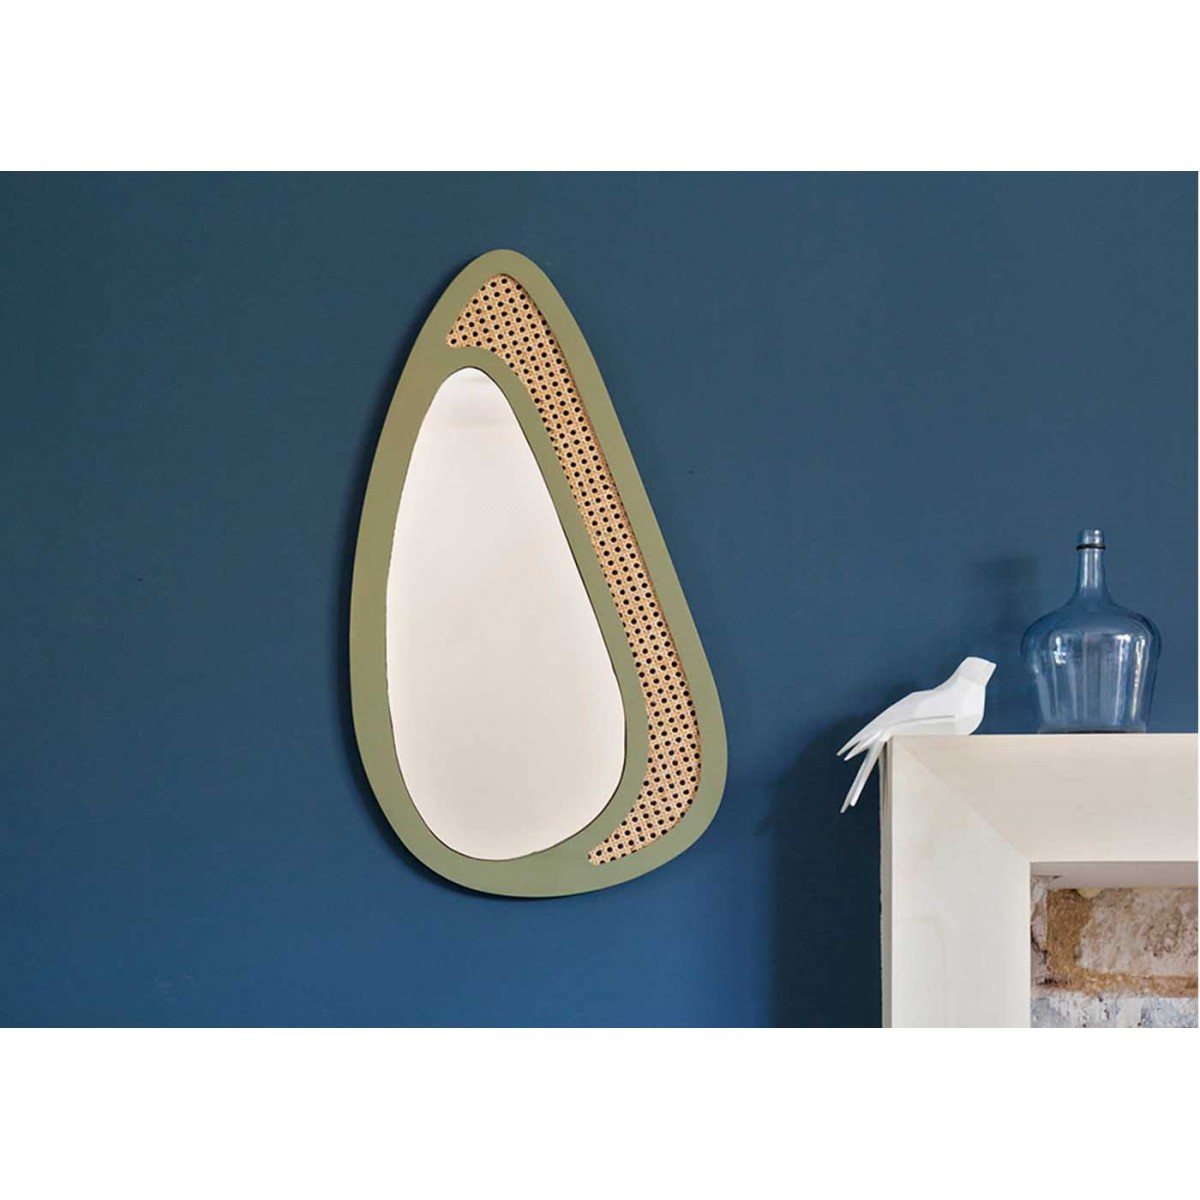 Miroir design scandinave en bois et rotin gustave sign for Miroir noir design